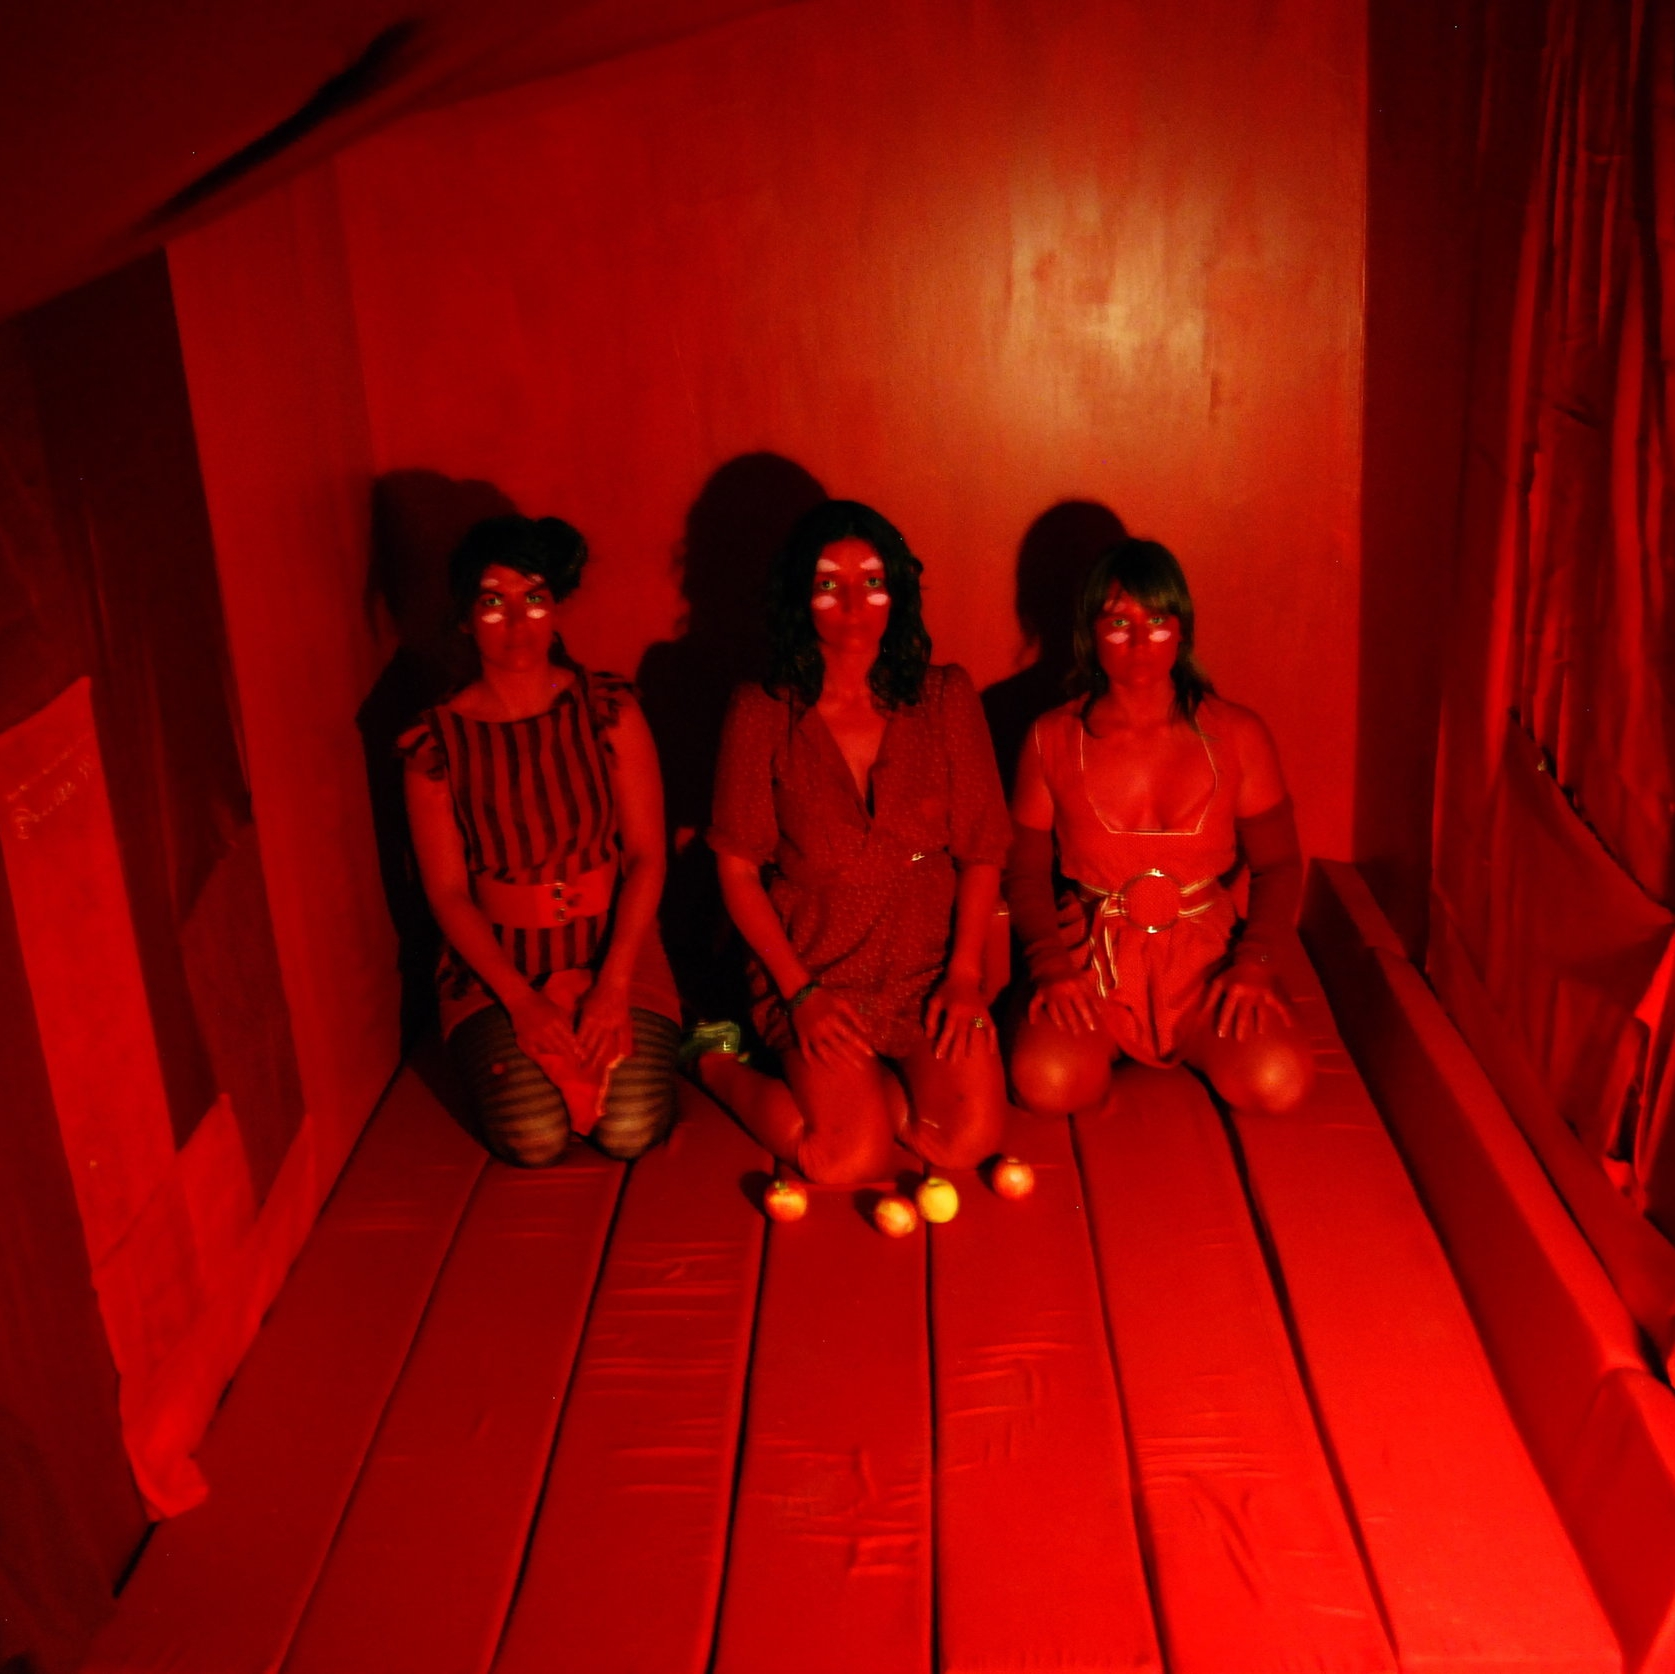 "'Red Room' installation, interactive performance by Adriana Atema ""A Light in the Basement"" Stanhope Cellar Studios, Brooklyn NY 2011    Red Room assistants: Serra Victoria Bothwell Fells, and Vnessa Wolfchild"